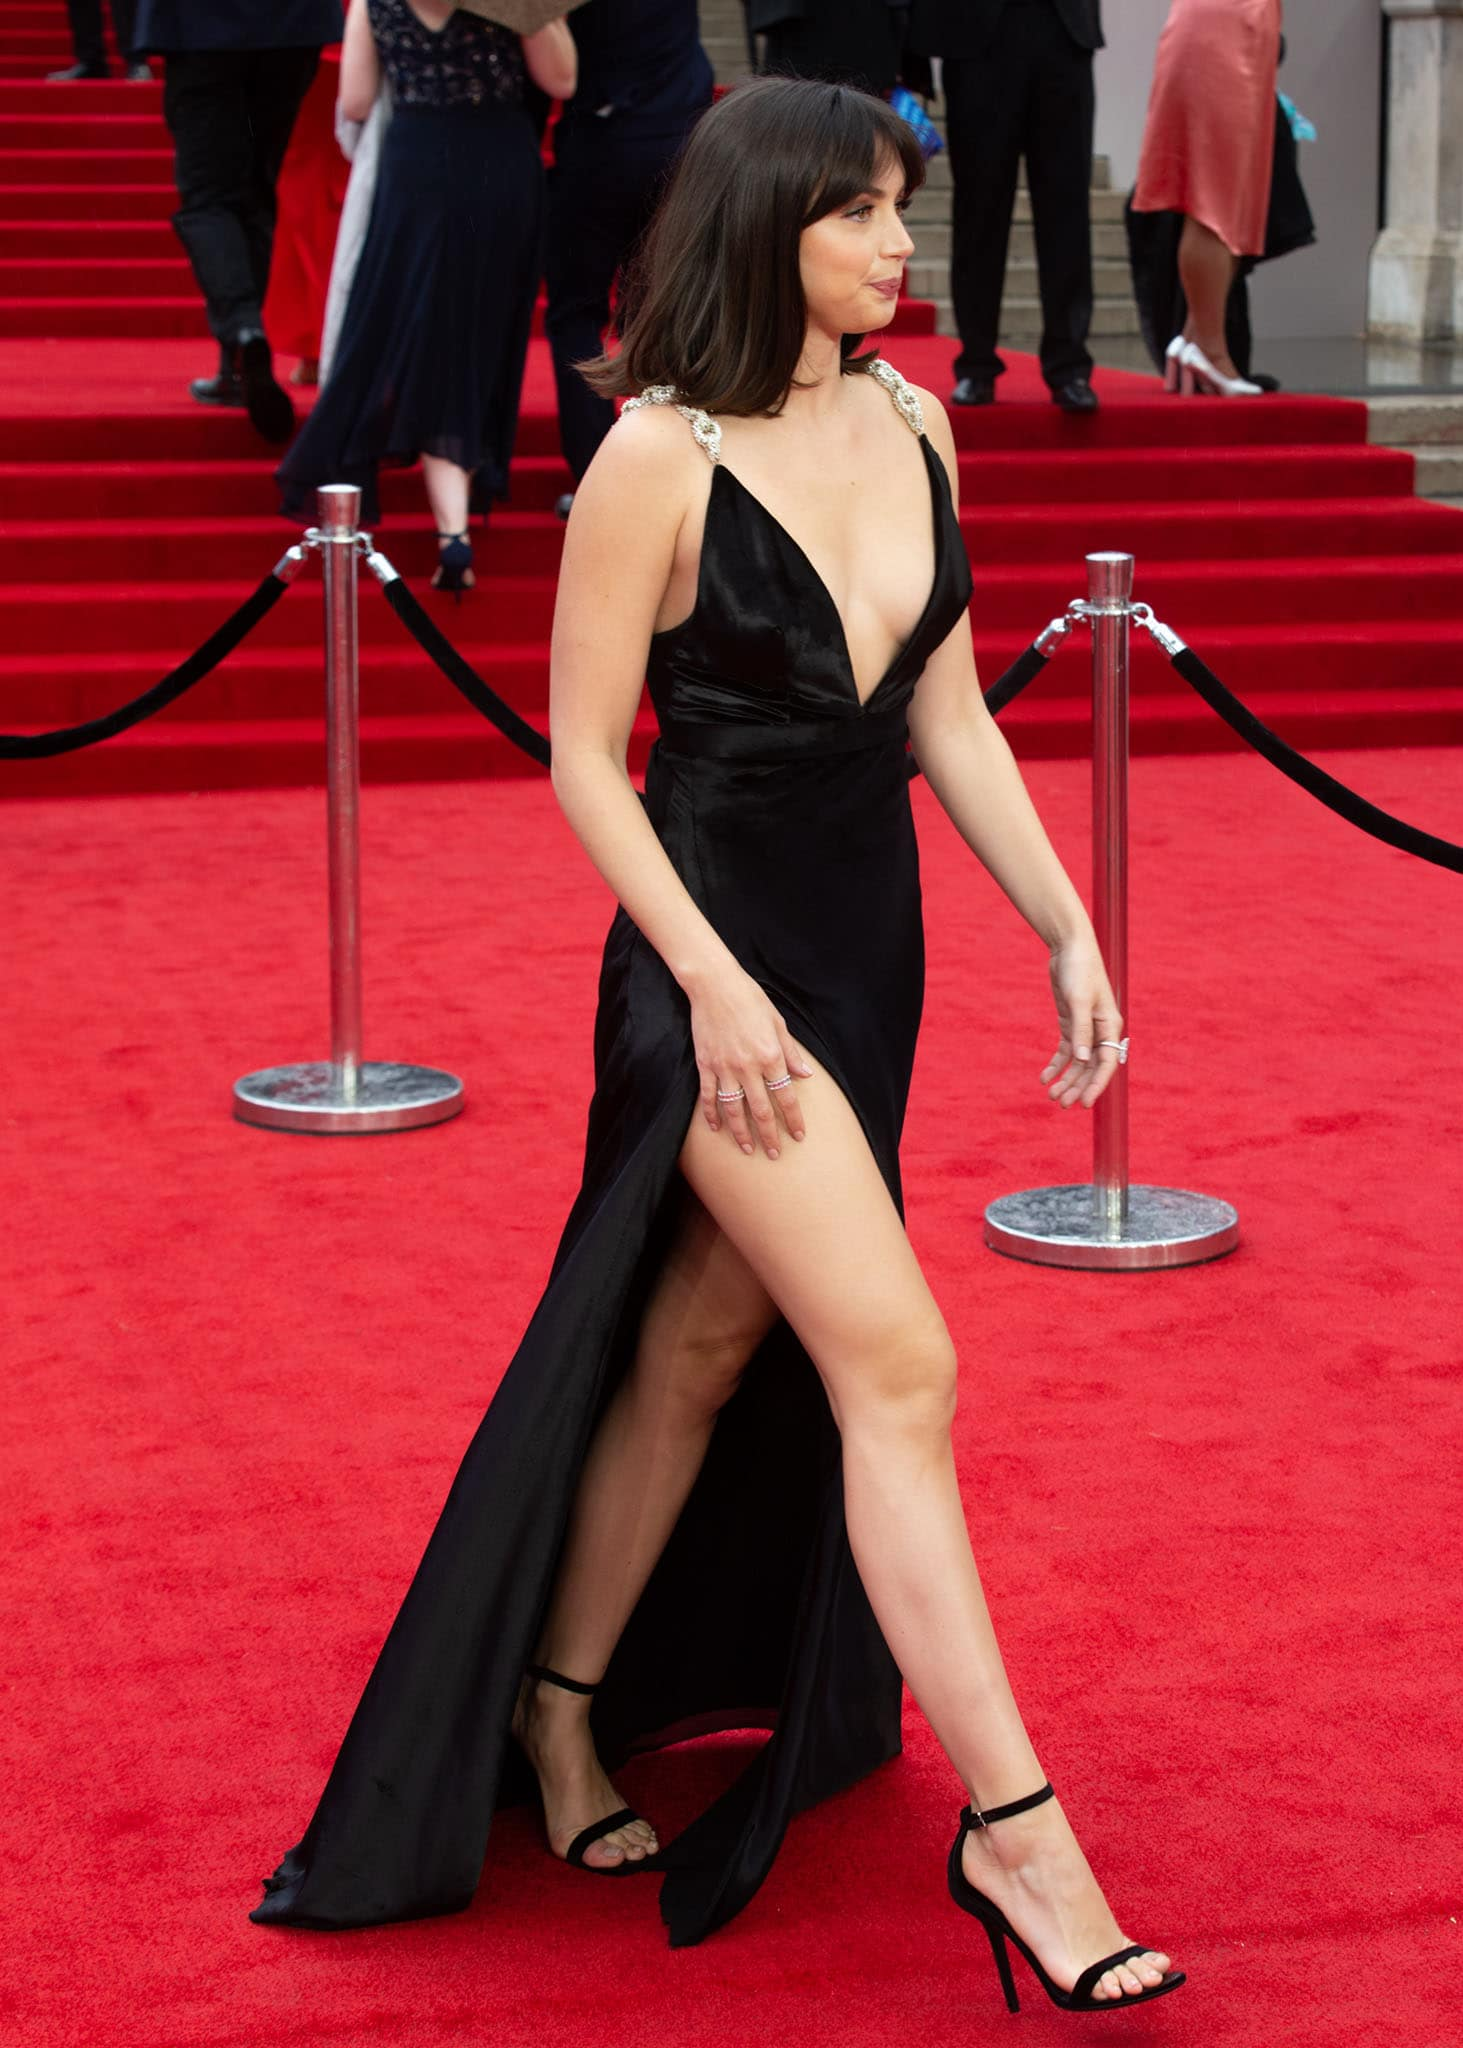 Ana de Armas puts on a leggy display in her Louis Vuitton dress featuring risqué hip-high slit and plunging neckline